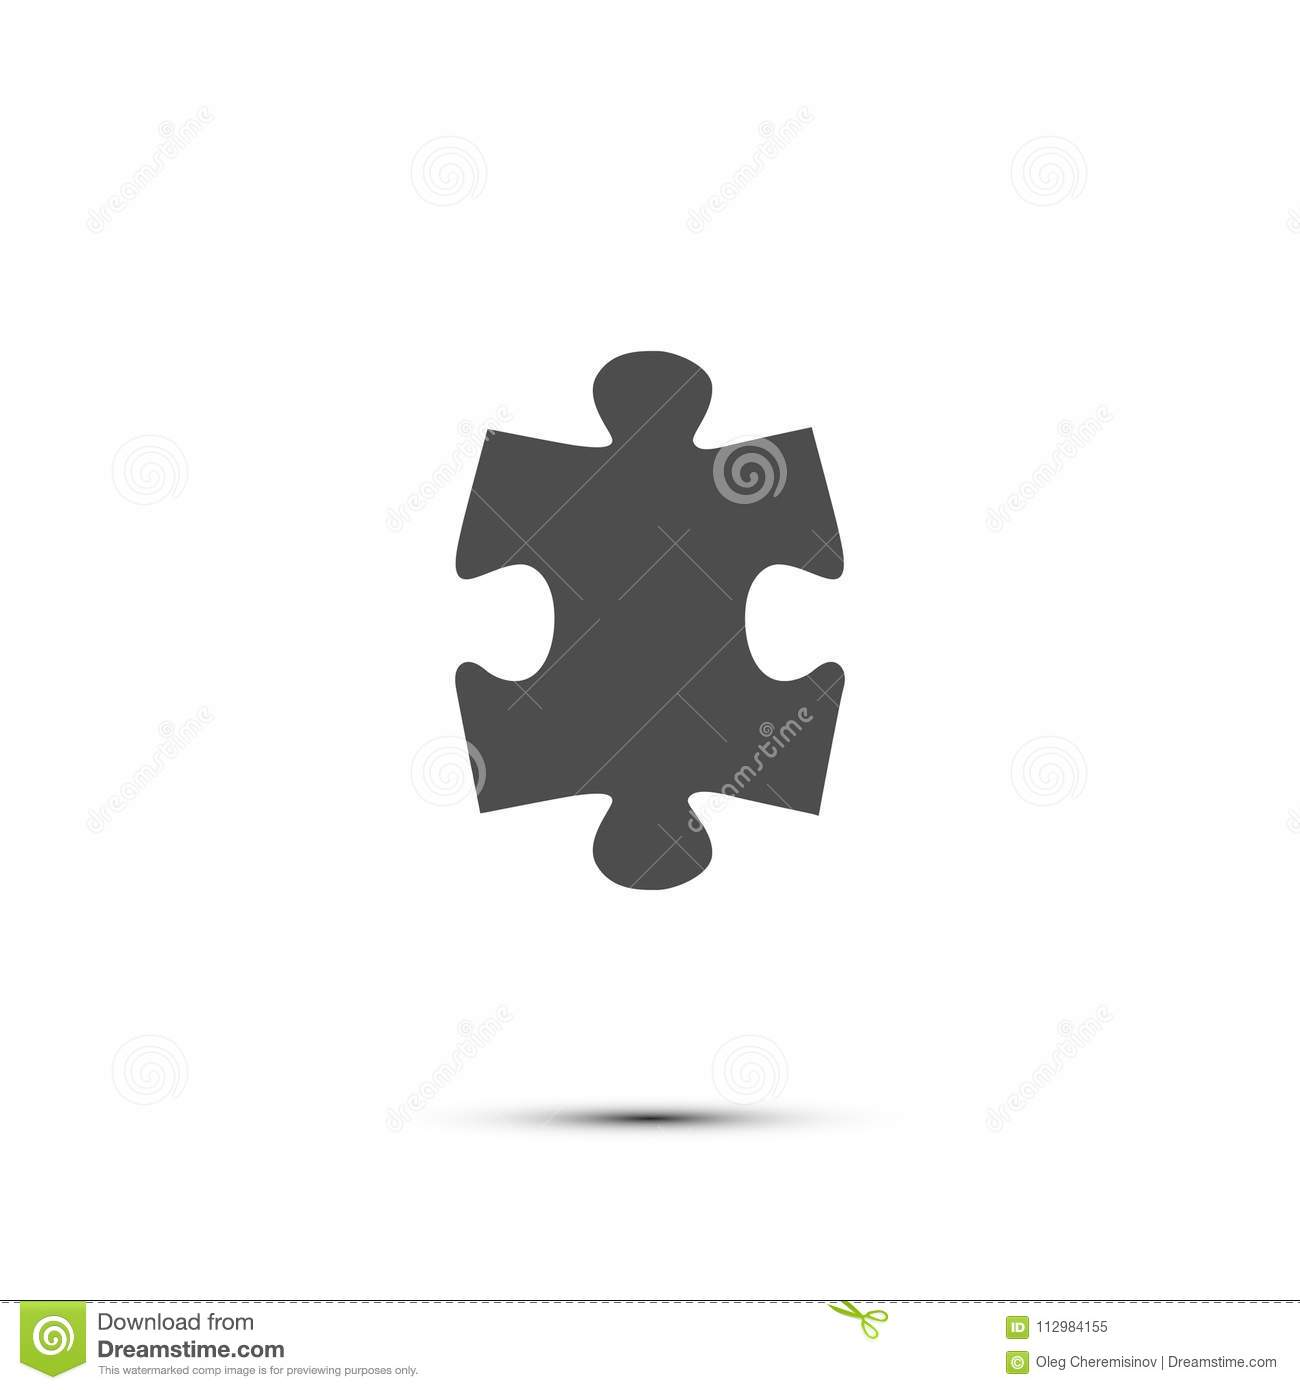 Puzzle icon. Vector gray puzzle piece isolated on white background.